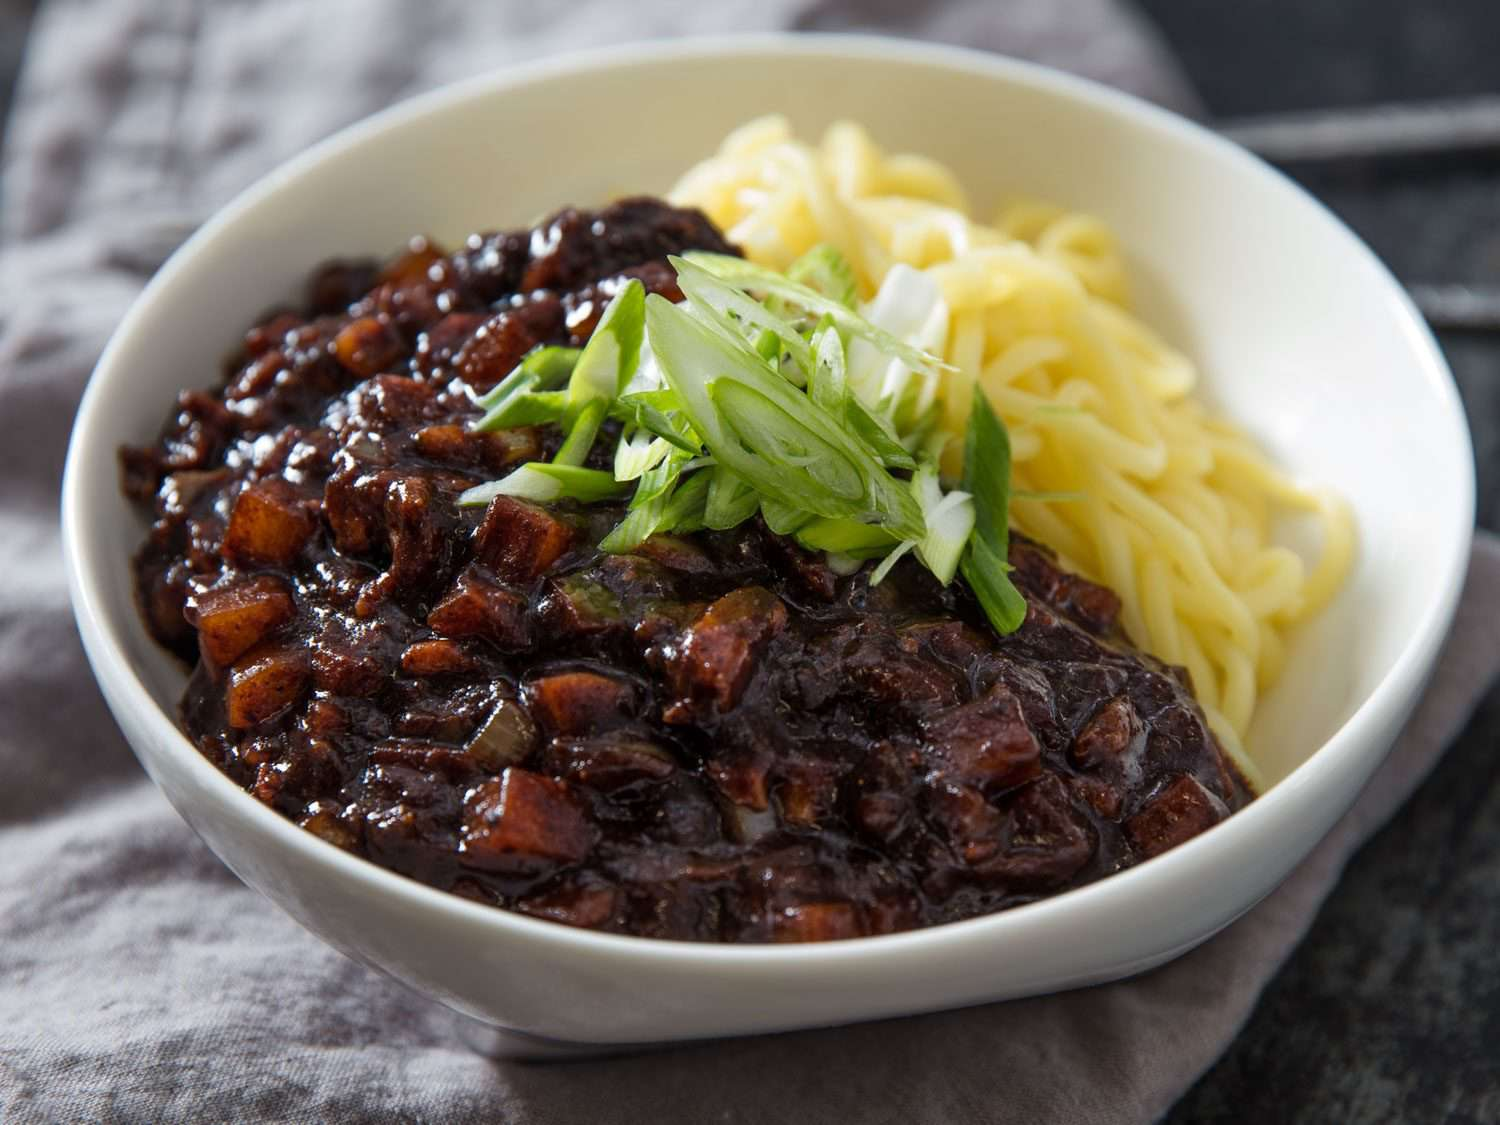 Close-up of a bowl of jjajangmyeon (wheat noodles with black bean sauce)